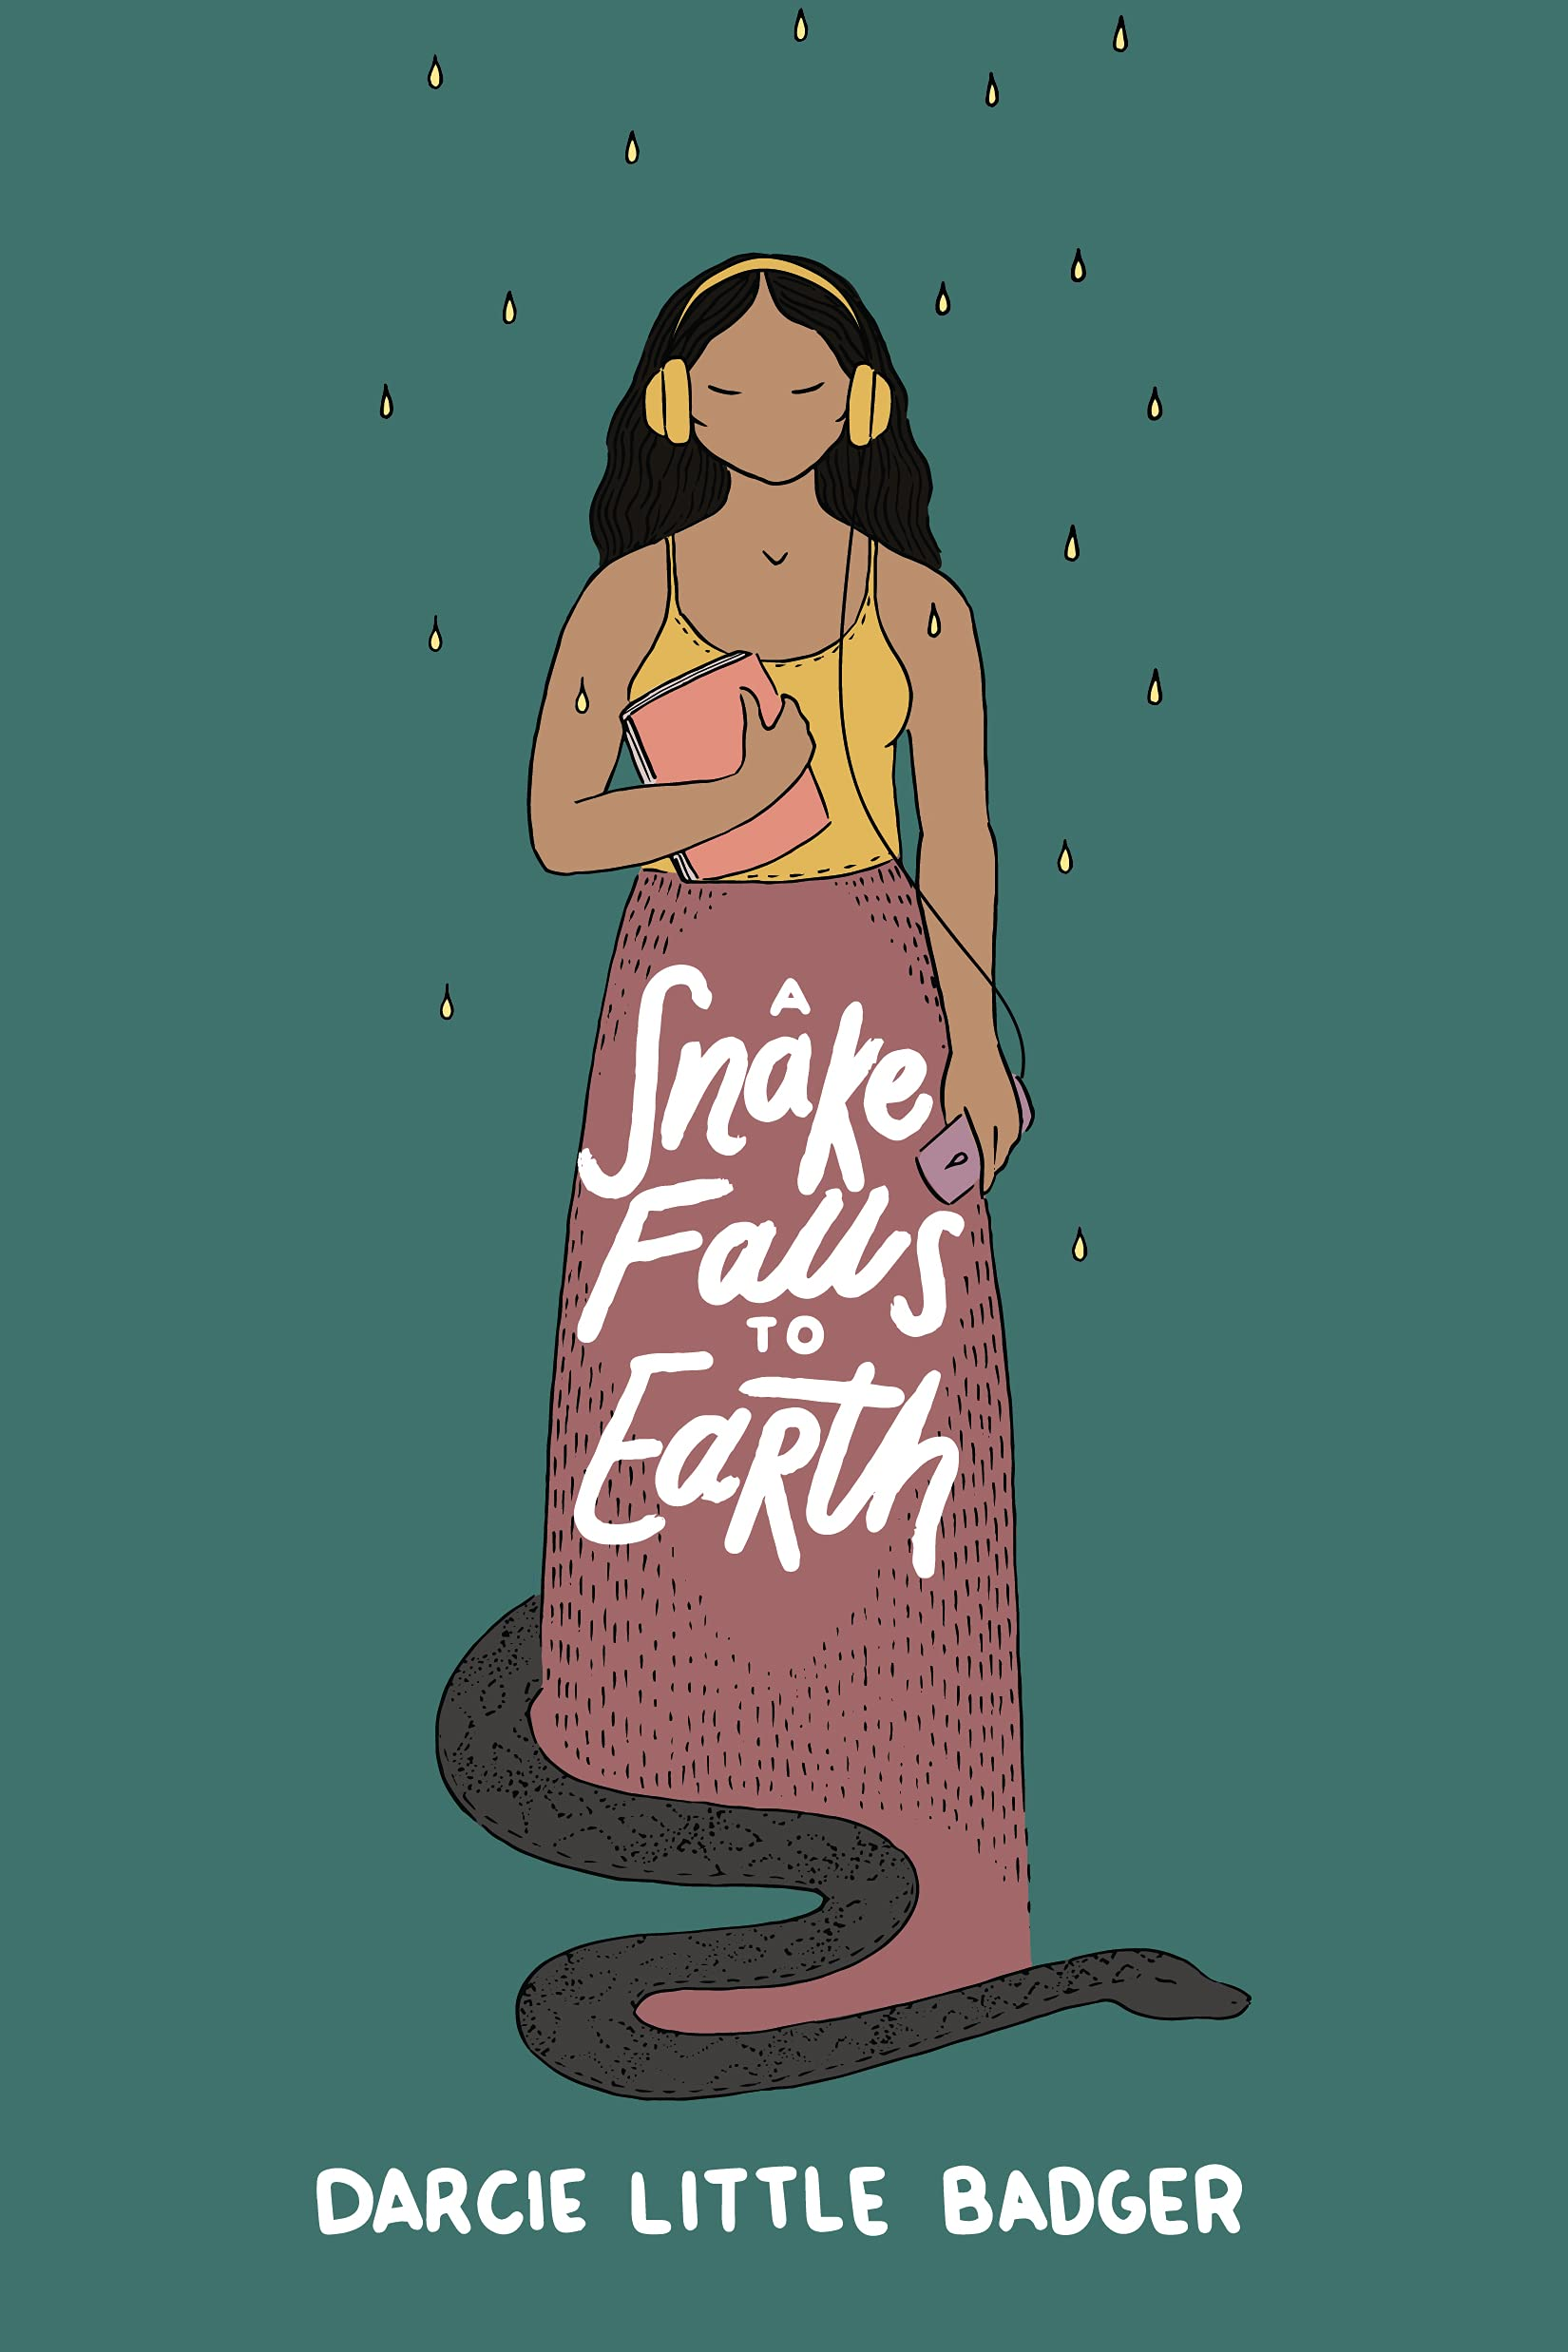 A Snake Falls to Earth by Darcie Little Badger